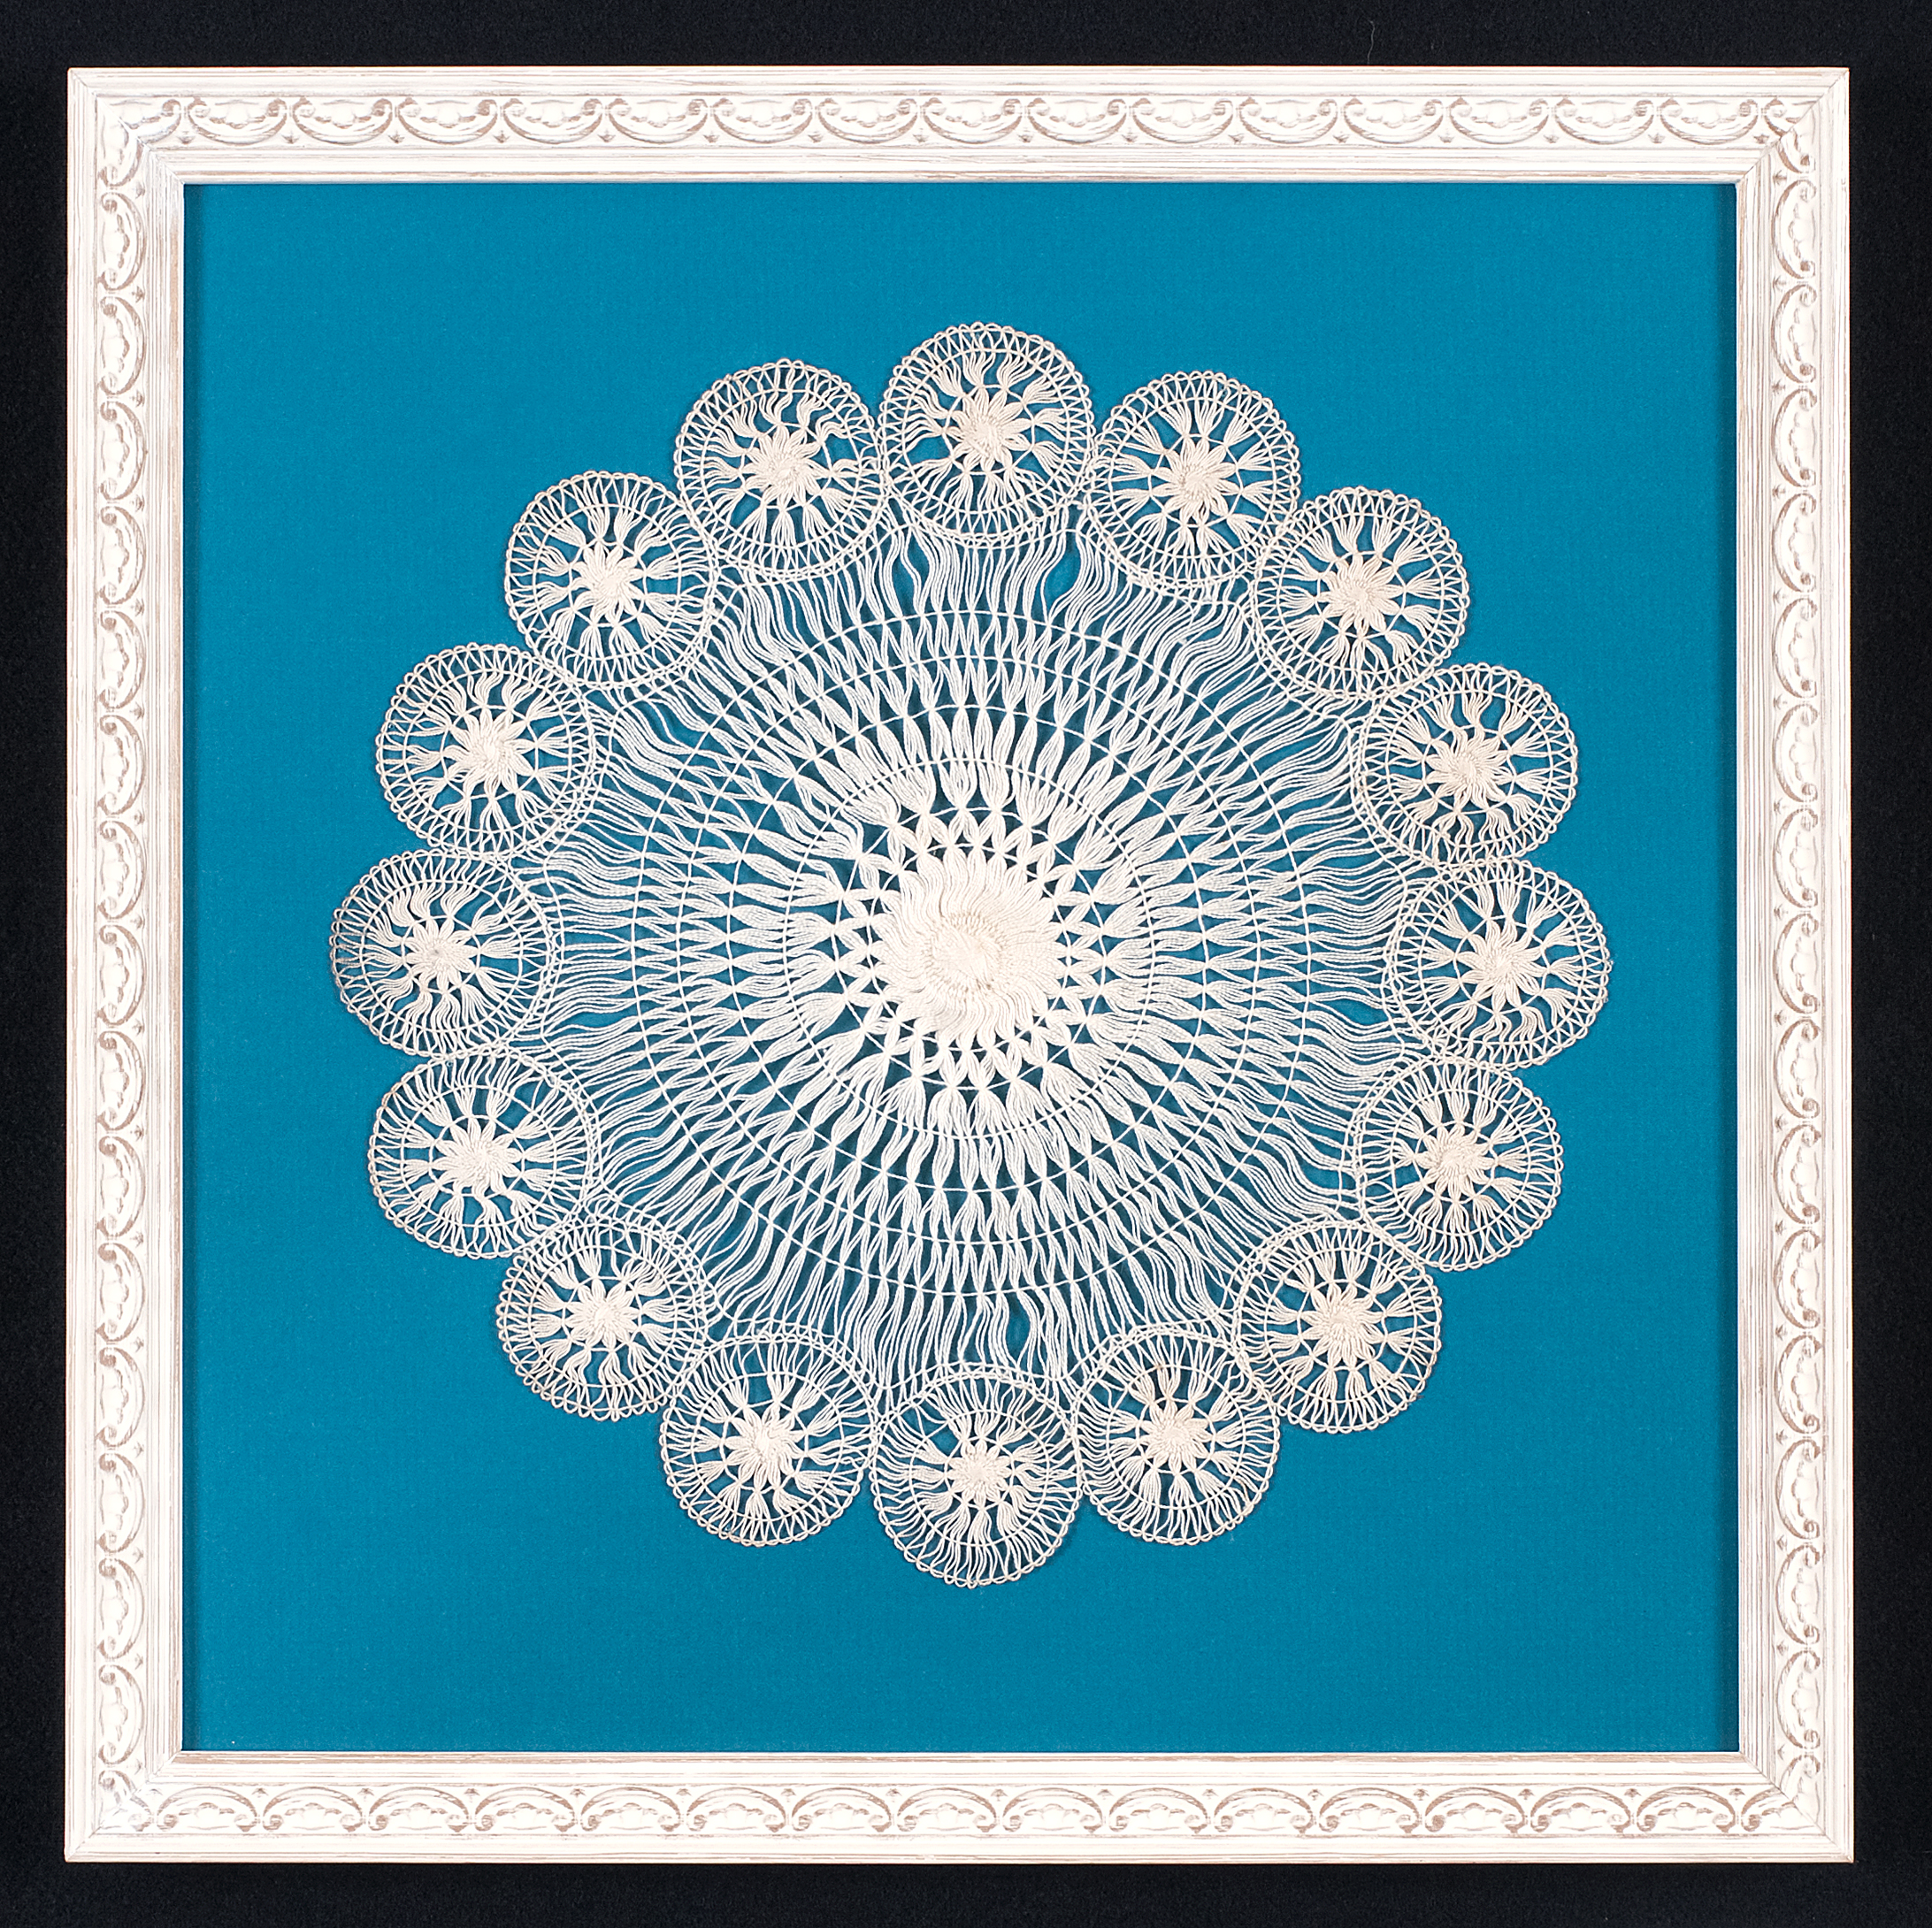 This doily is hand stitched to an acid free mat.Glass spacers are used to lift the ultra violet protective glass off the surface.The frame is a white painted moulding with a floral design. Photo Credit: Elizabeth LaJeunesse  .